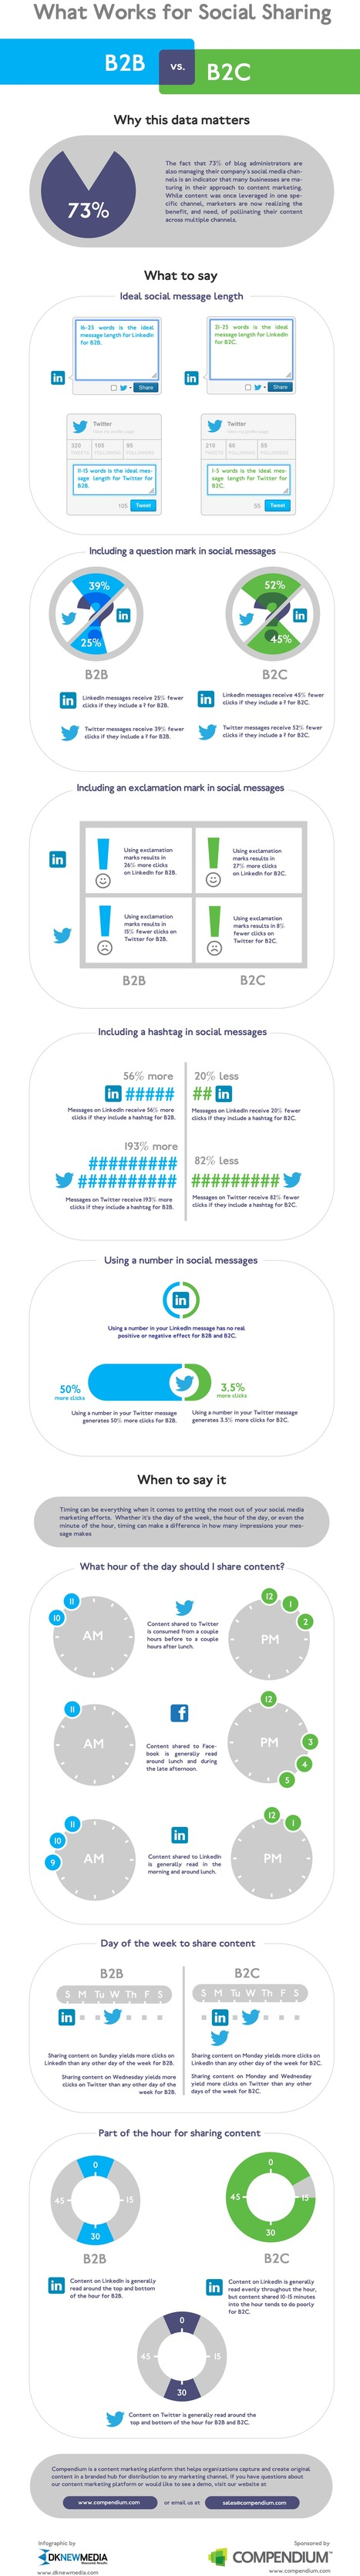 What Works for Social Sharing | Visual.ly | Social Media and Web Infographics hh | Scoop.it